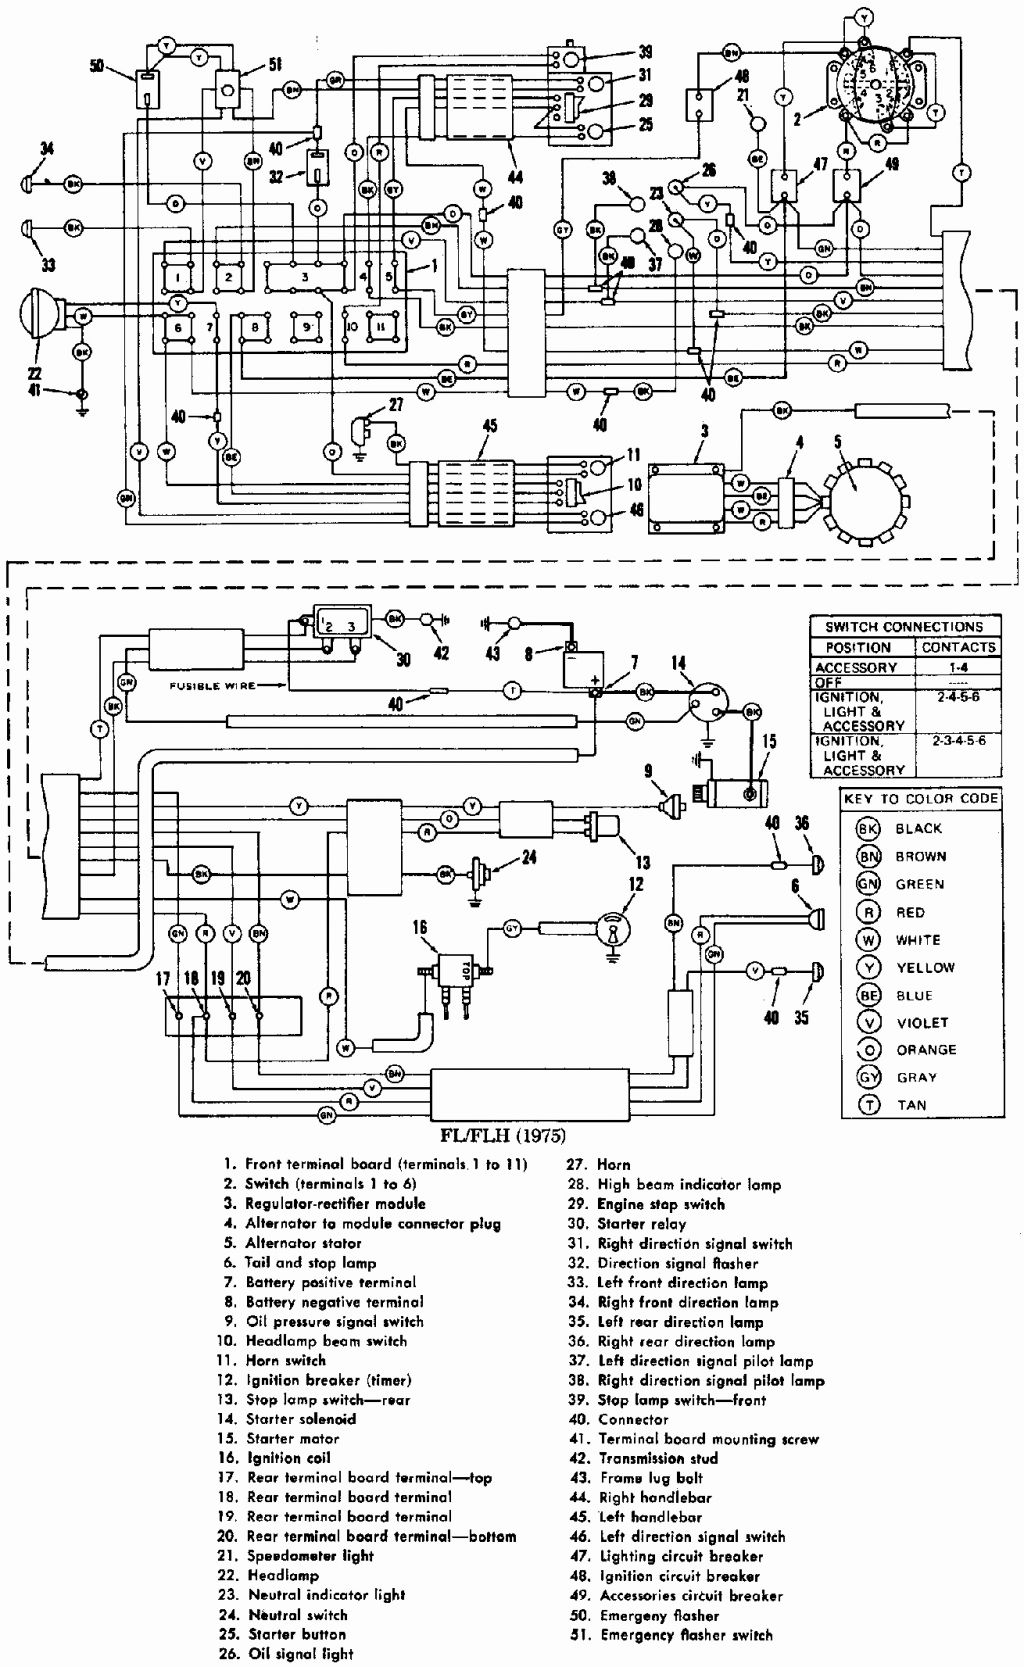 Rostra Wiring Diagram Free Download Schematic - Wiring ... on